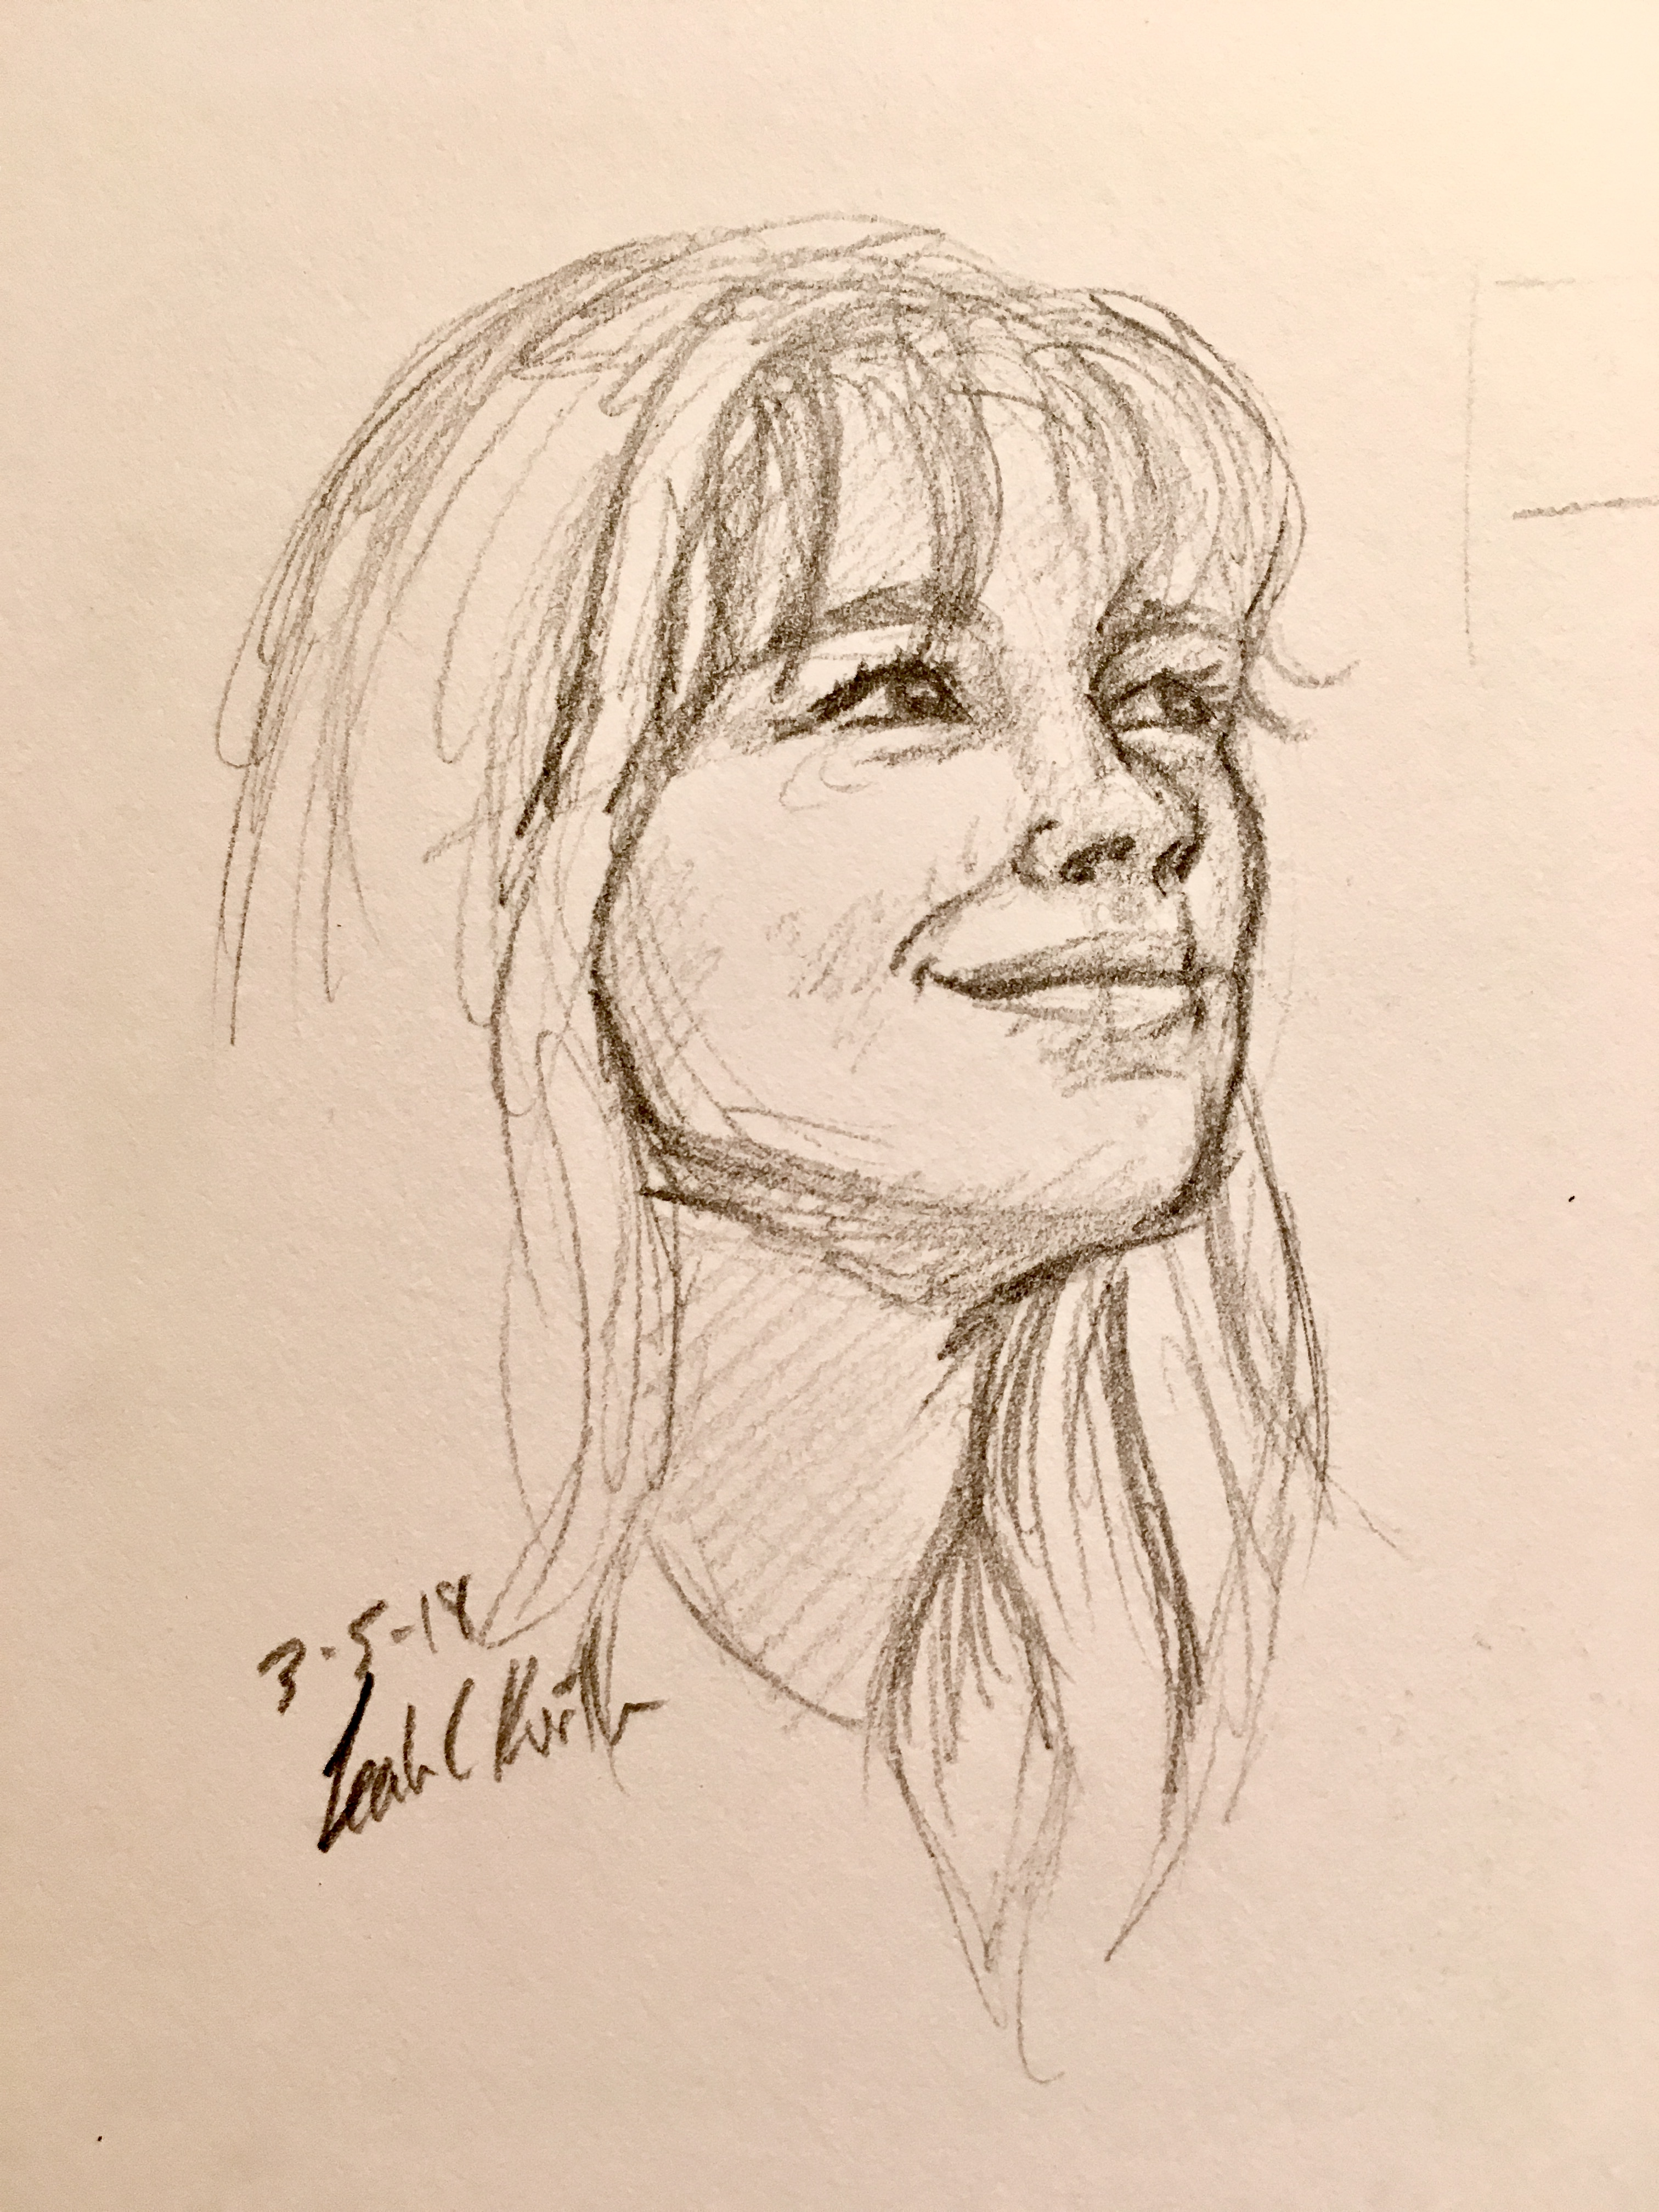 sketch of classmate from life